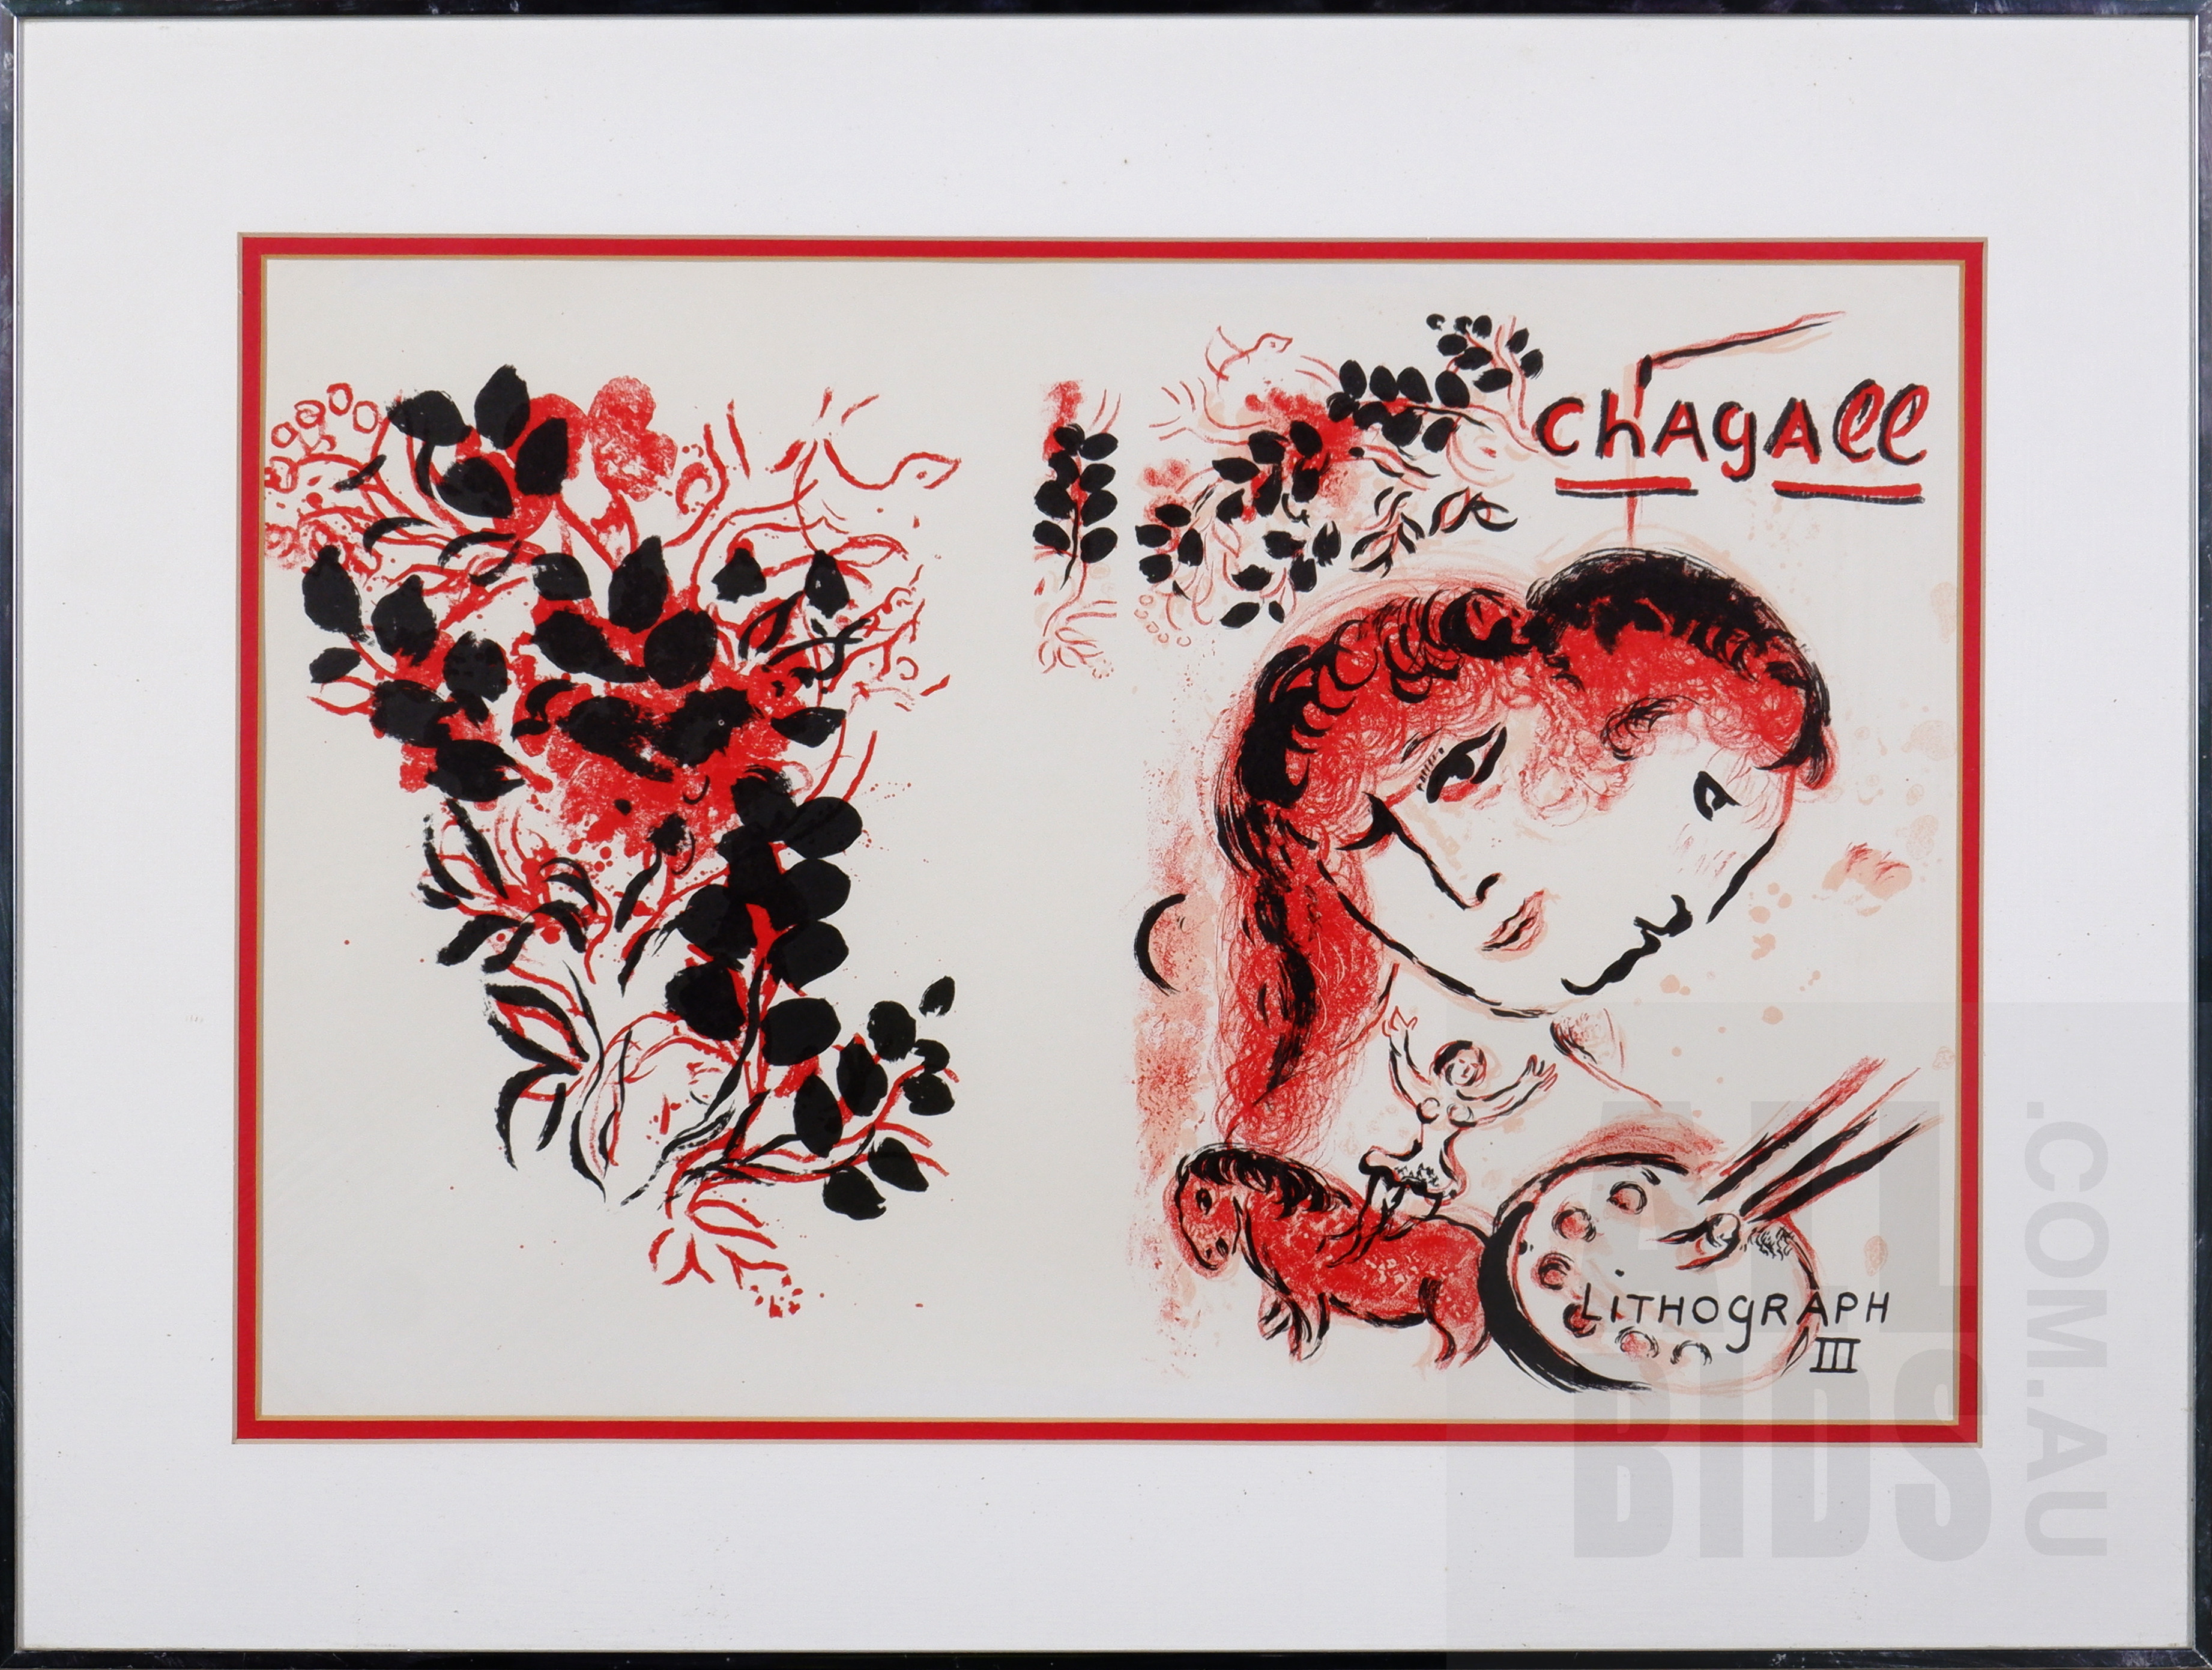 'Marc Chagall (1887-1985, Russian/French), Lithographe III 1963, Lithograph, 35 x 52 cm (image size)'